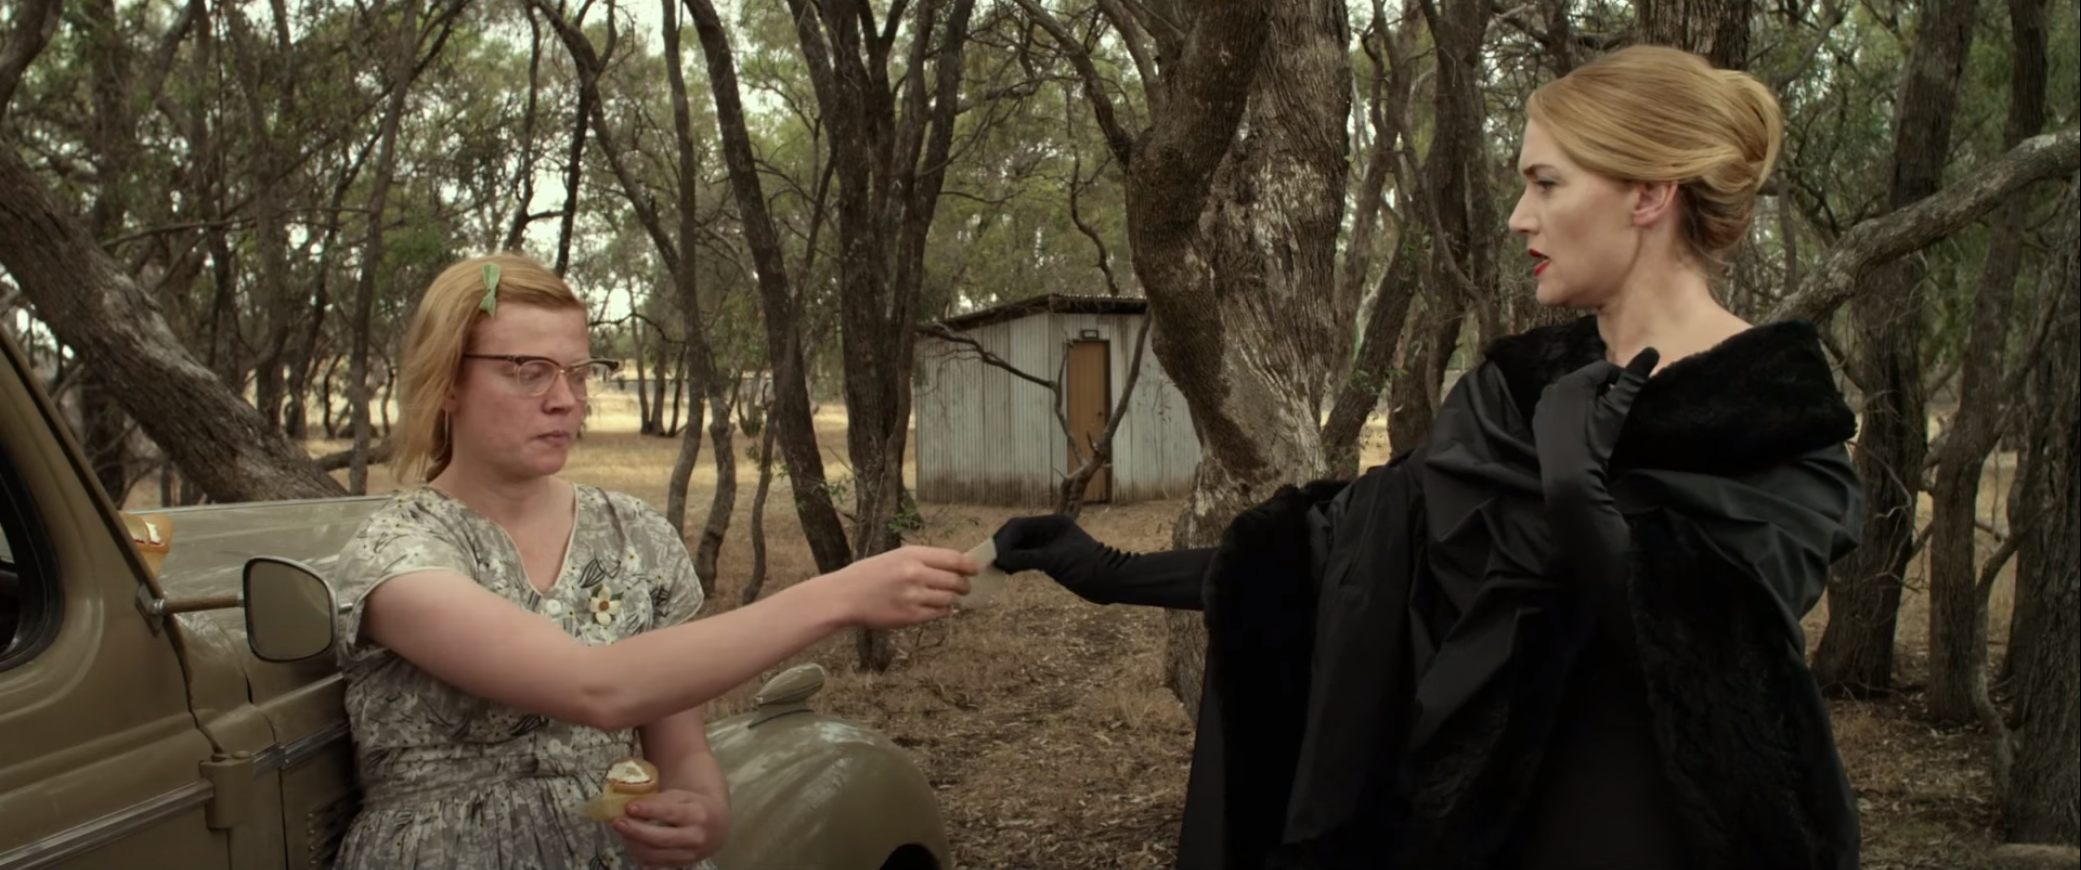 A screencap from The Dressmaker, showing Tilly in haute couture handing her calling card to the plainly-dressed Gertrude.